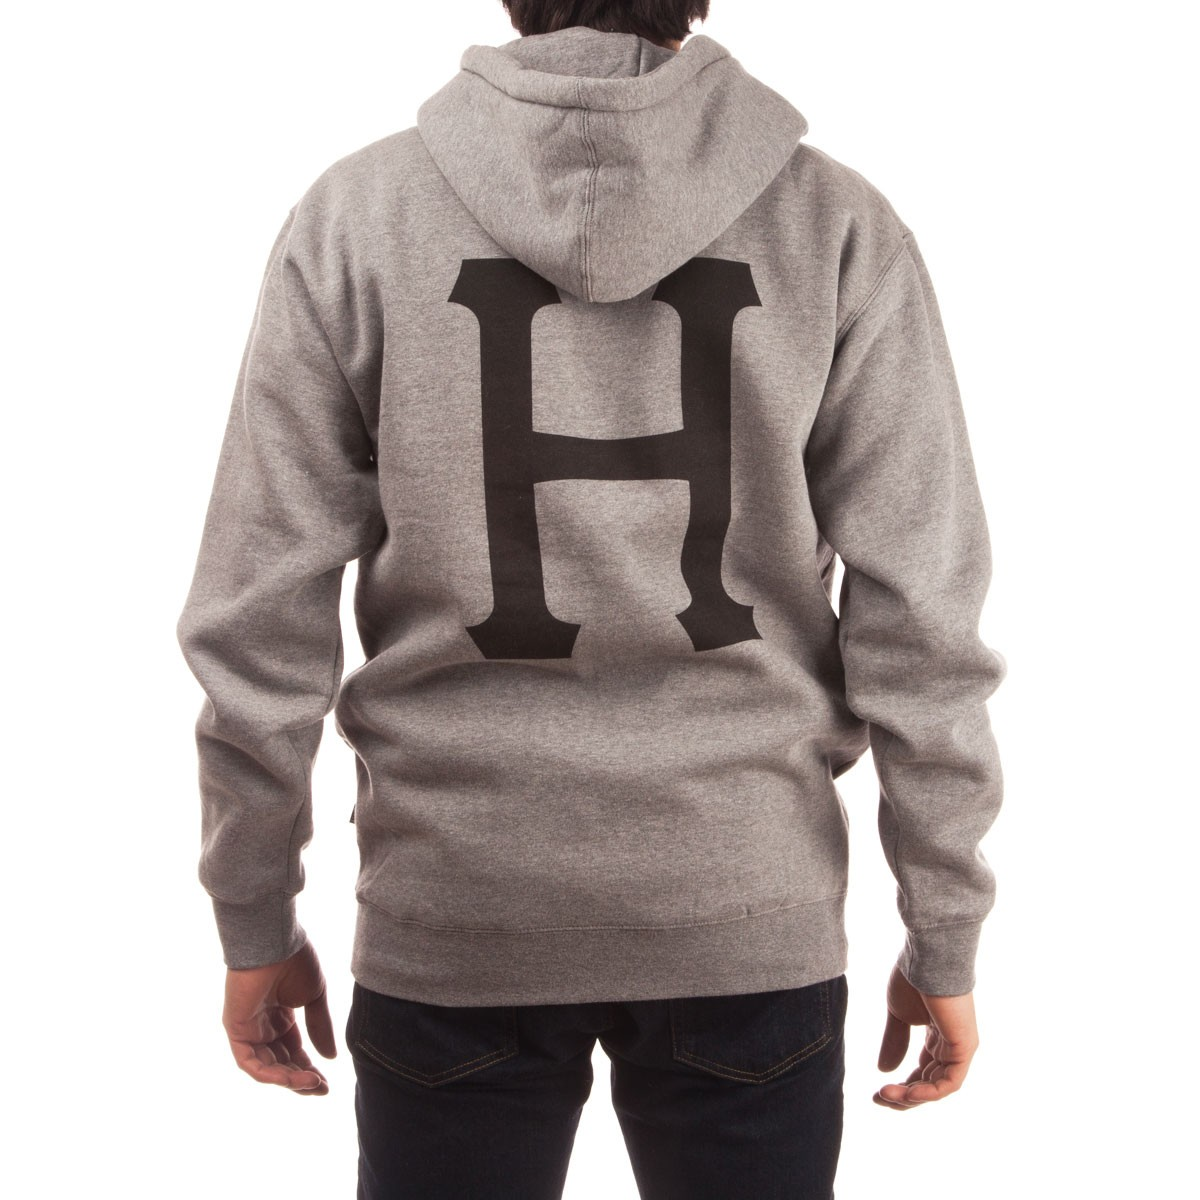 cc1ae7d9c8d1 HUF X Thrasher Classic H Pullover Hoodie - Grey Heather